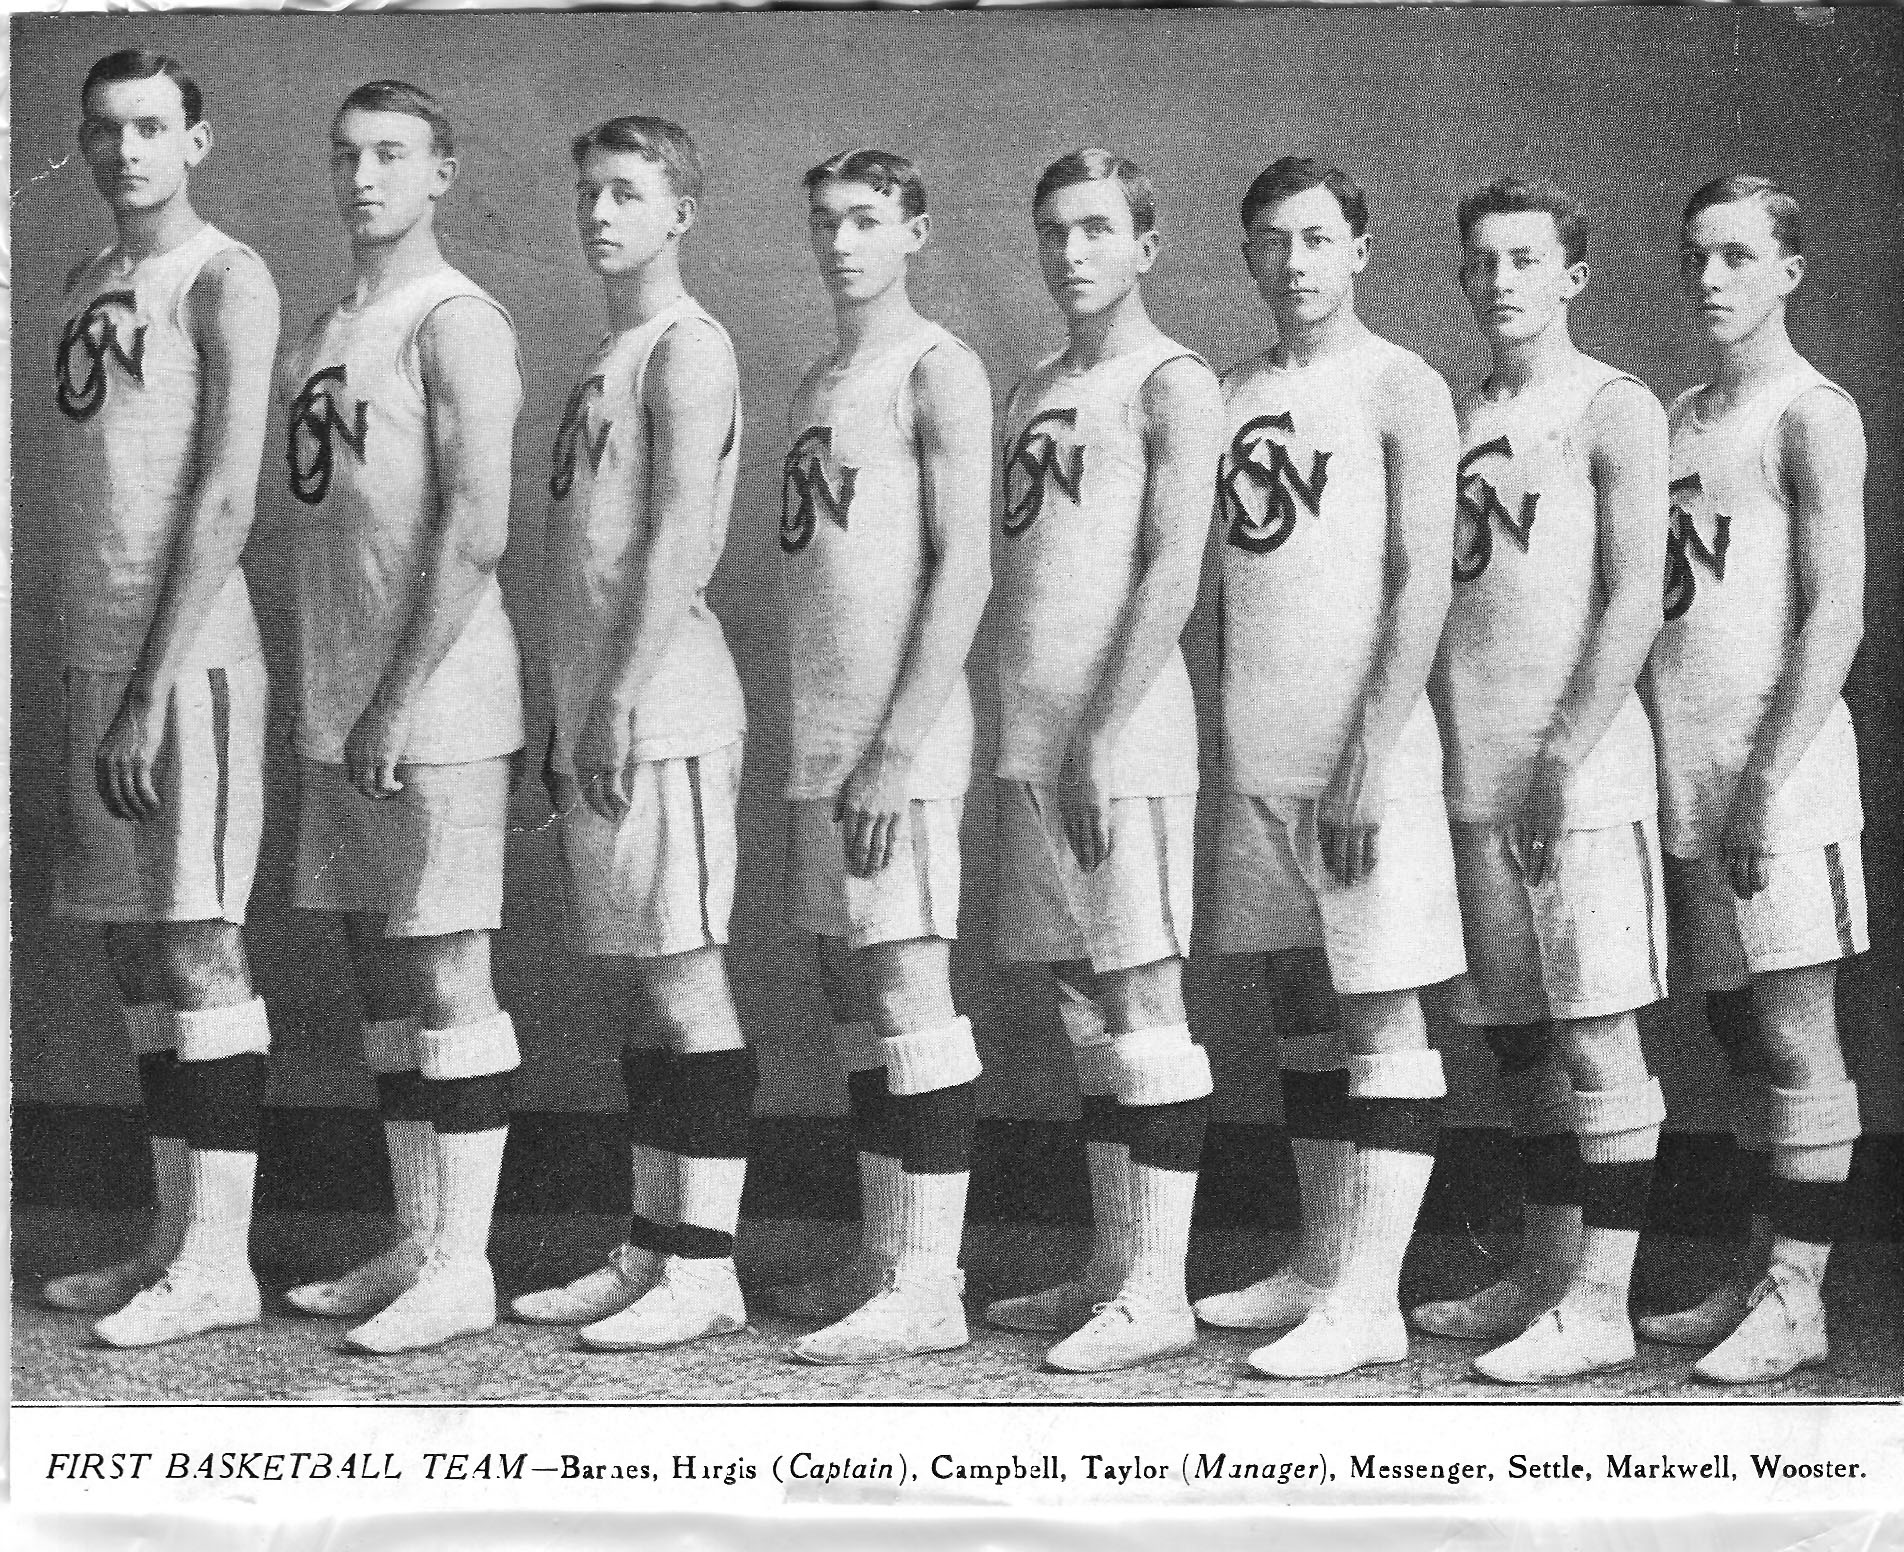 KSN Basketball 1908 with Hargiss